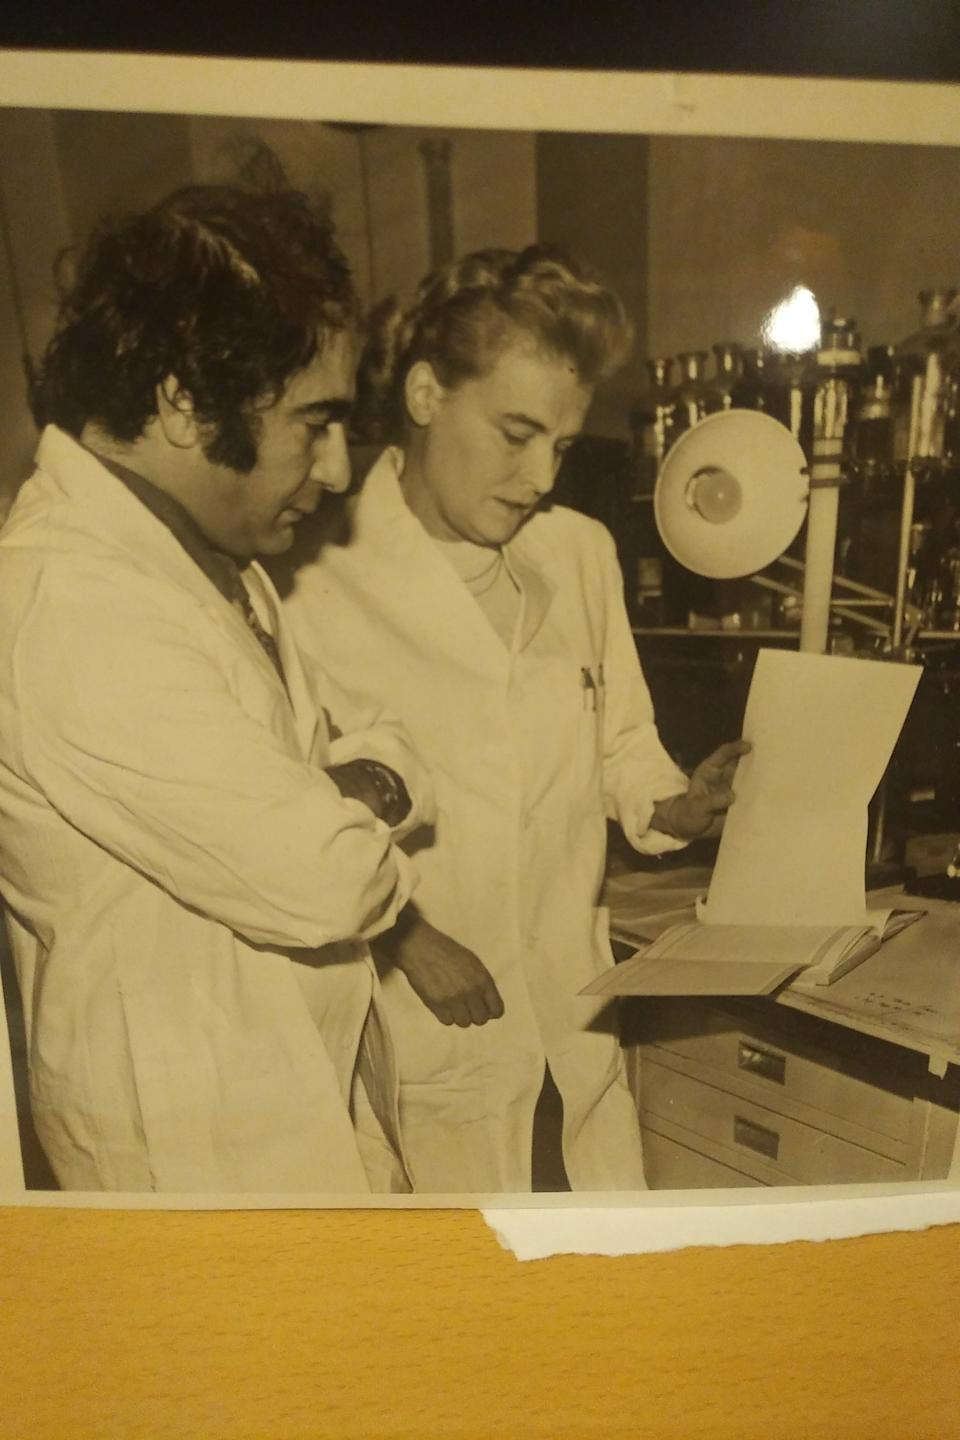 Professor Gregory Gregoriadis with Dr Brenda Ryman in their laboratory at the Royal Free Hospital School of Medicine in 1971, the year they published their research about the use of liposomes as drug carriers